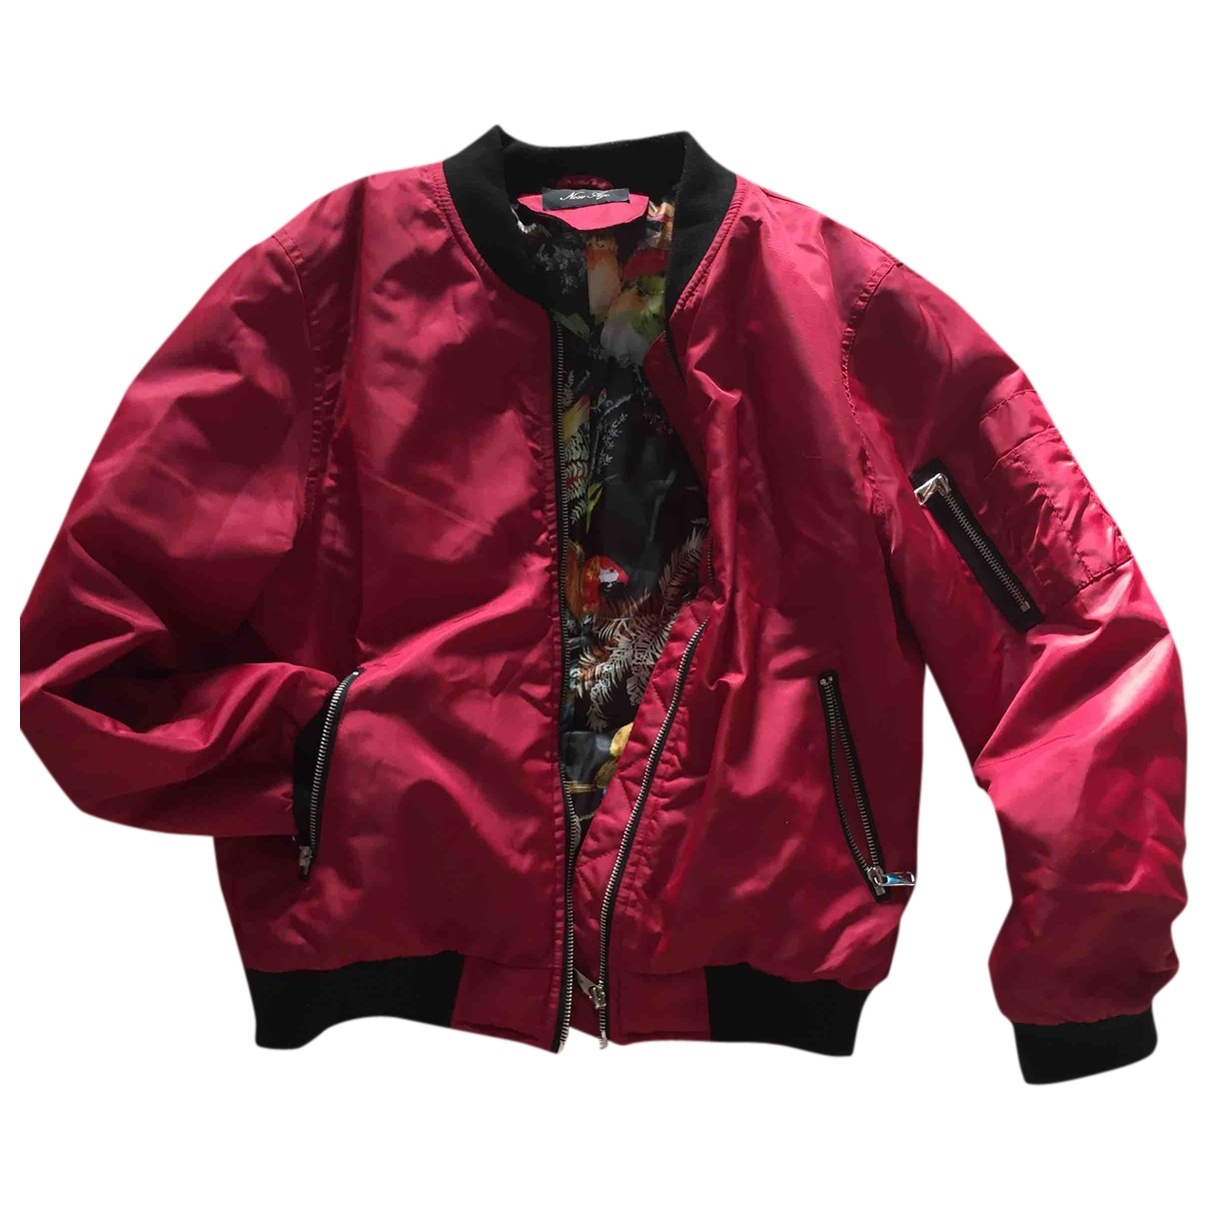 Non Signe / Unsigned \N Jacke in  Bordeauxrot Polyester